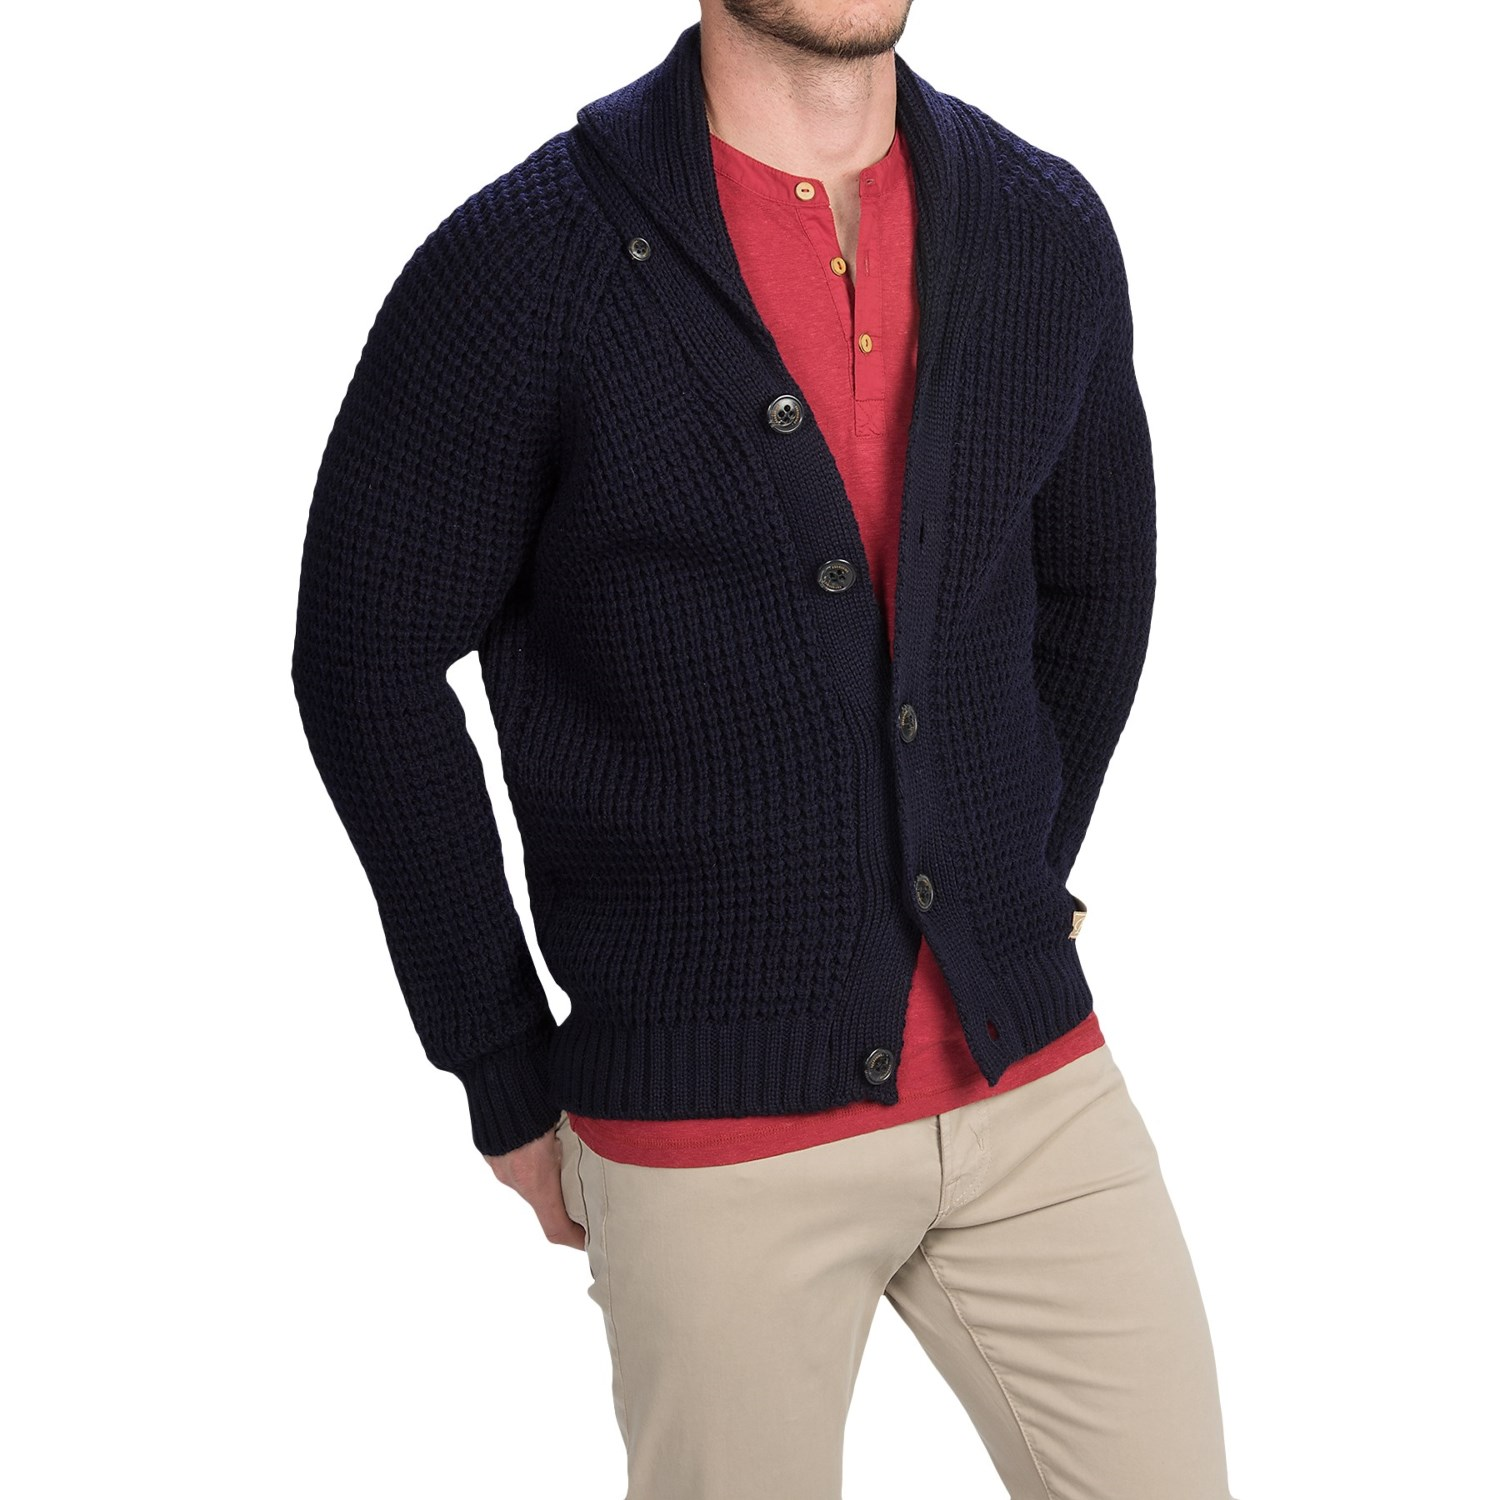 Peregrine by J.G. Glover Shawl Collar Cardigan Sweater , Merino Wool (For Men). Item 9752A. Peregrine by J.G. Glover Shawl Collar Cardigan Sweater